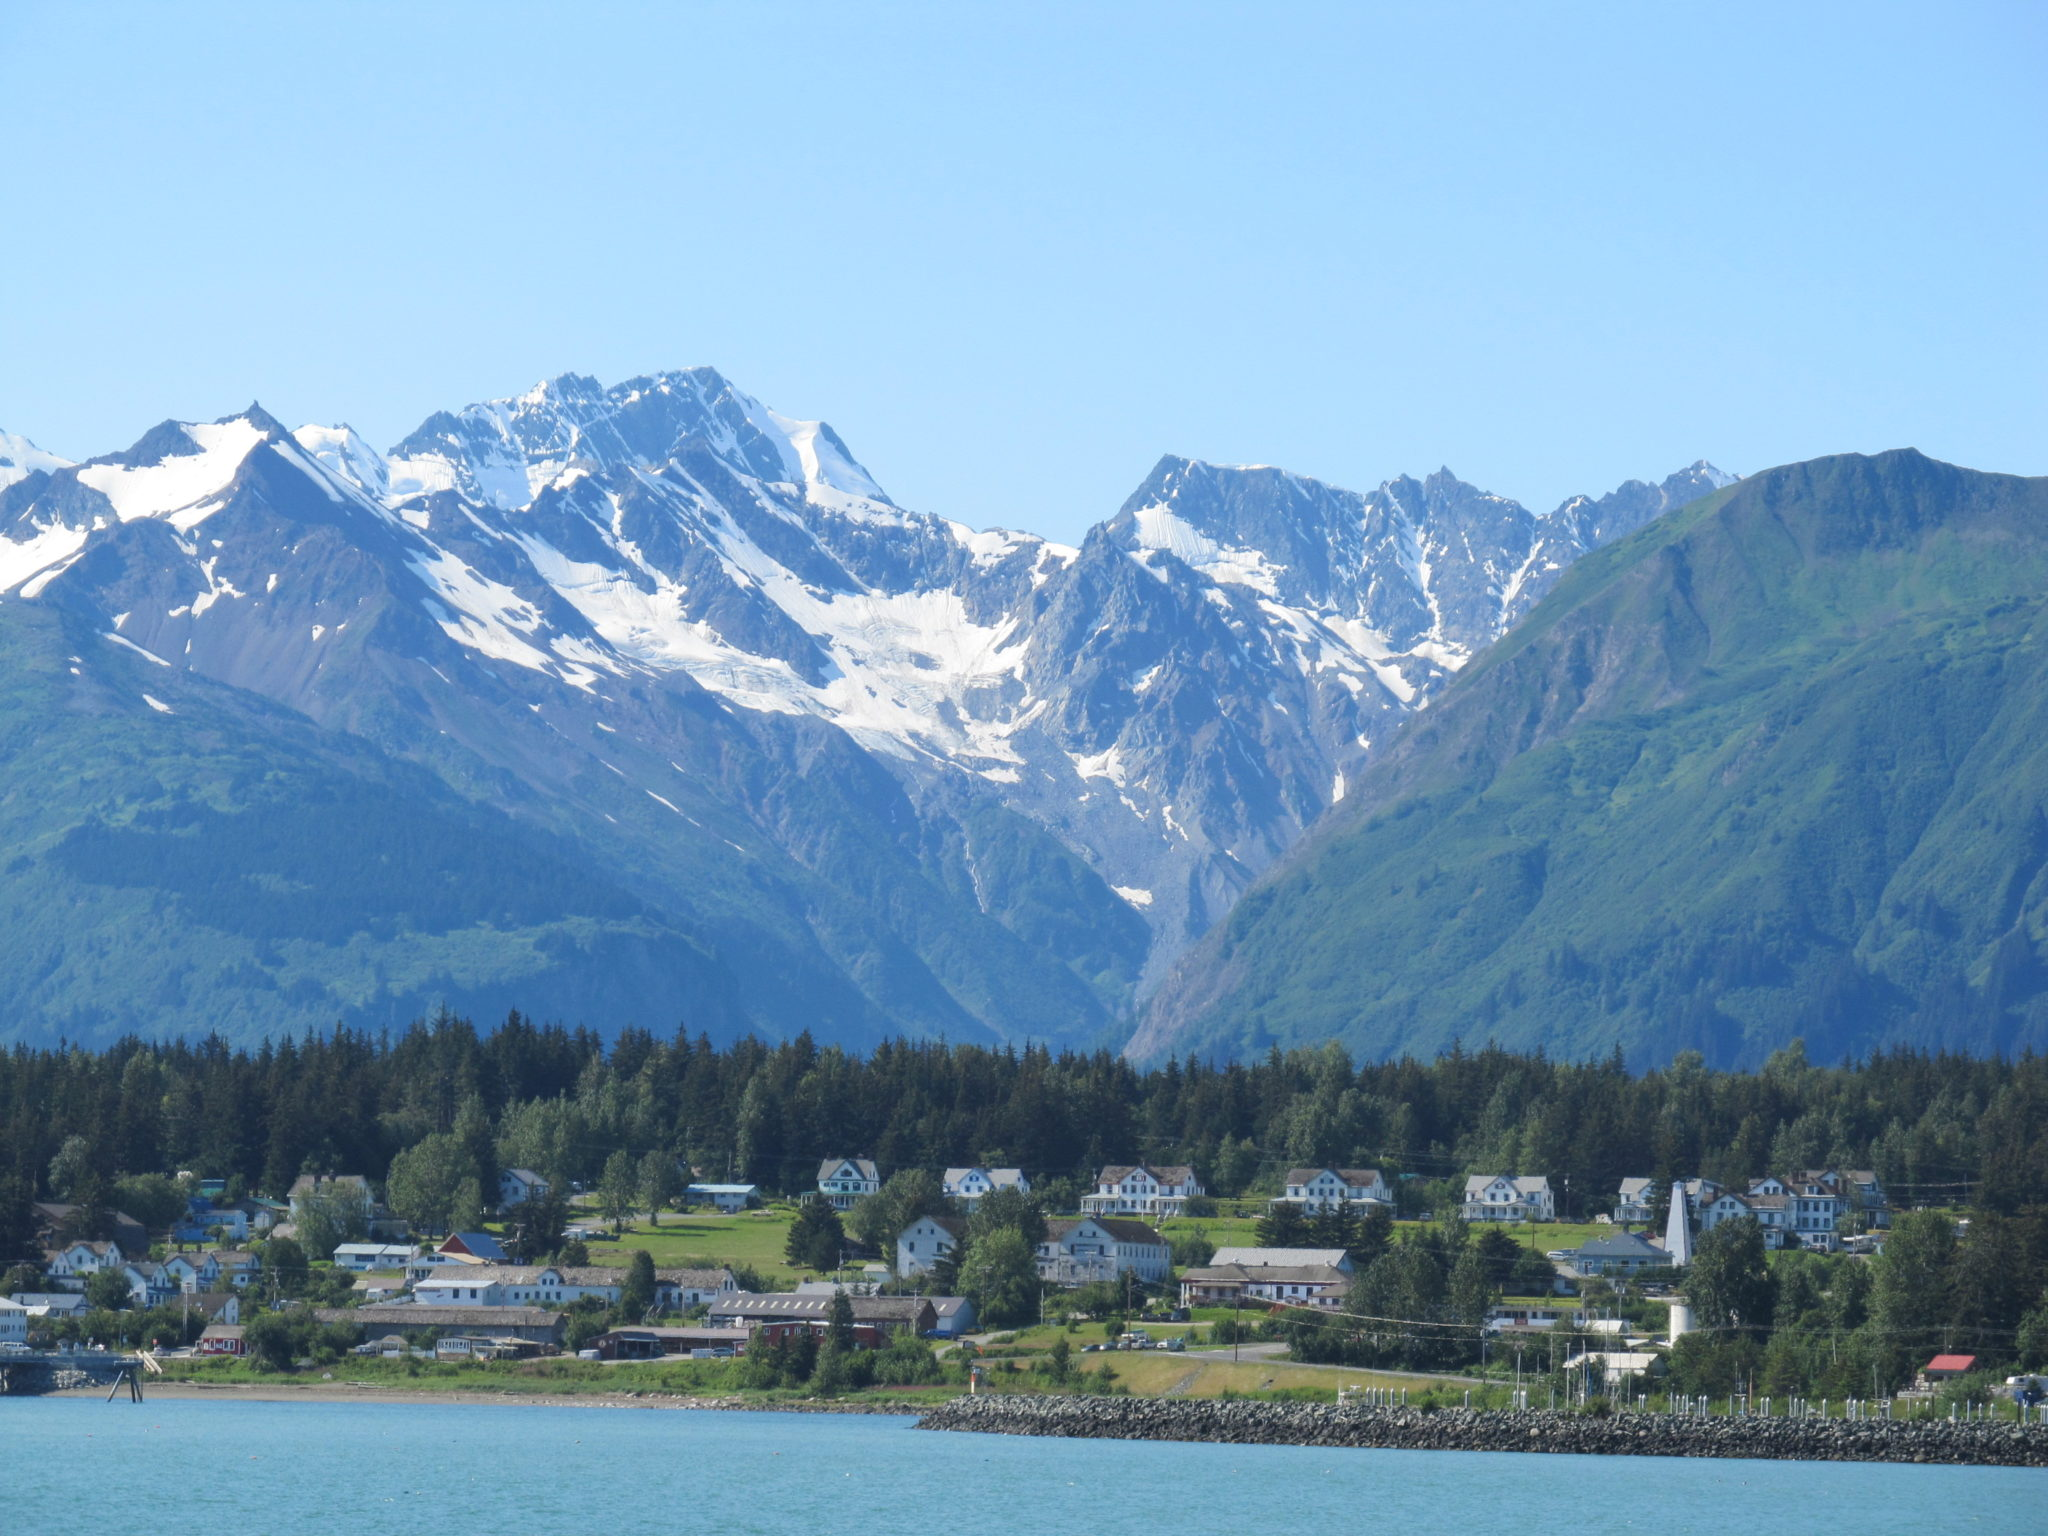 Alaska Marine Highway 101: Planning Your Sailing